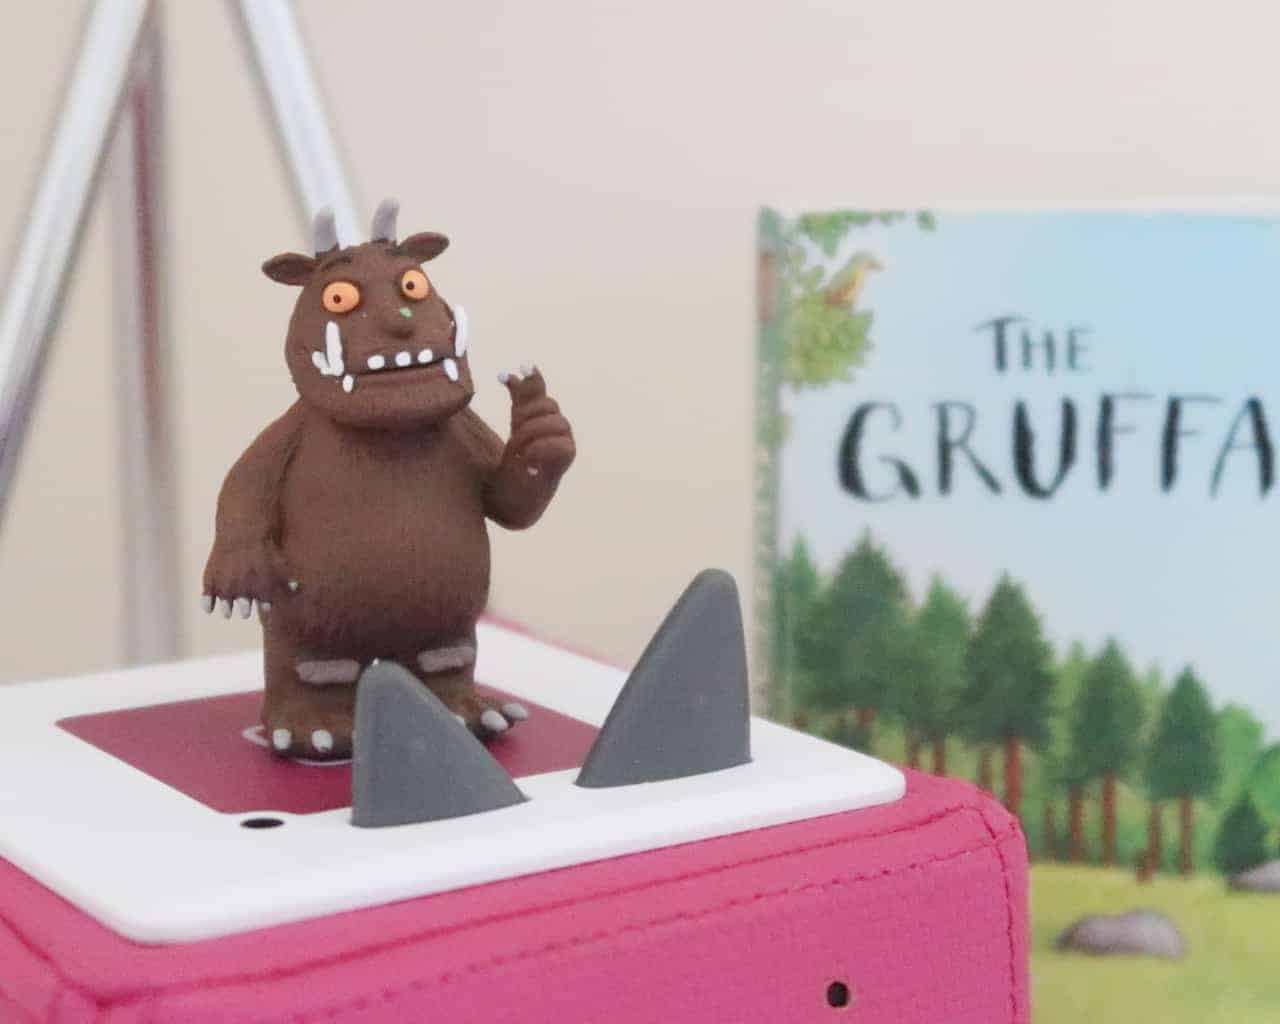 Celebrating World Book Day with Tonies® and the Gruffalo